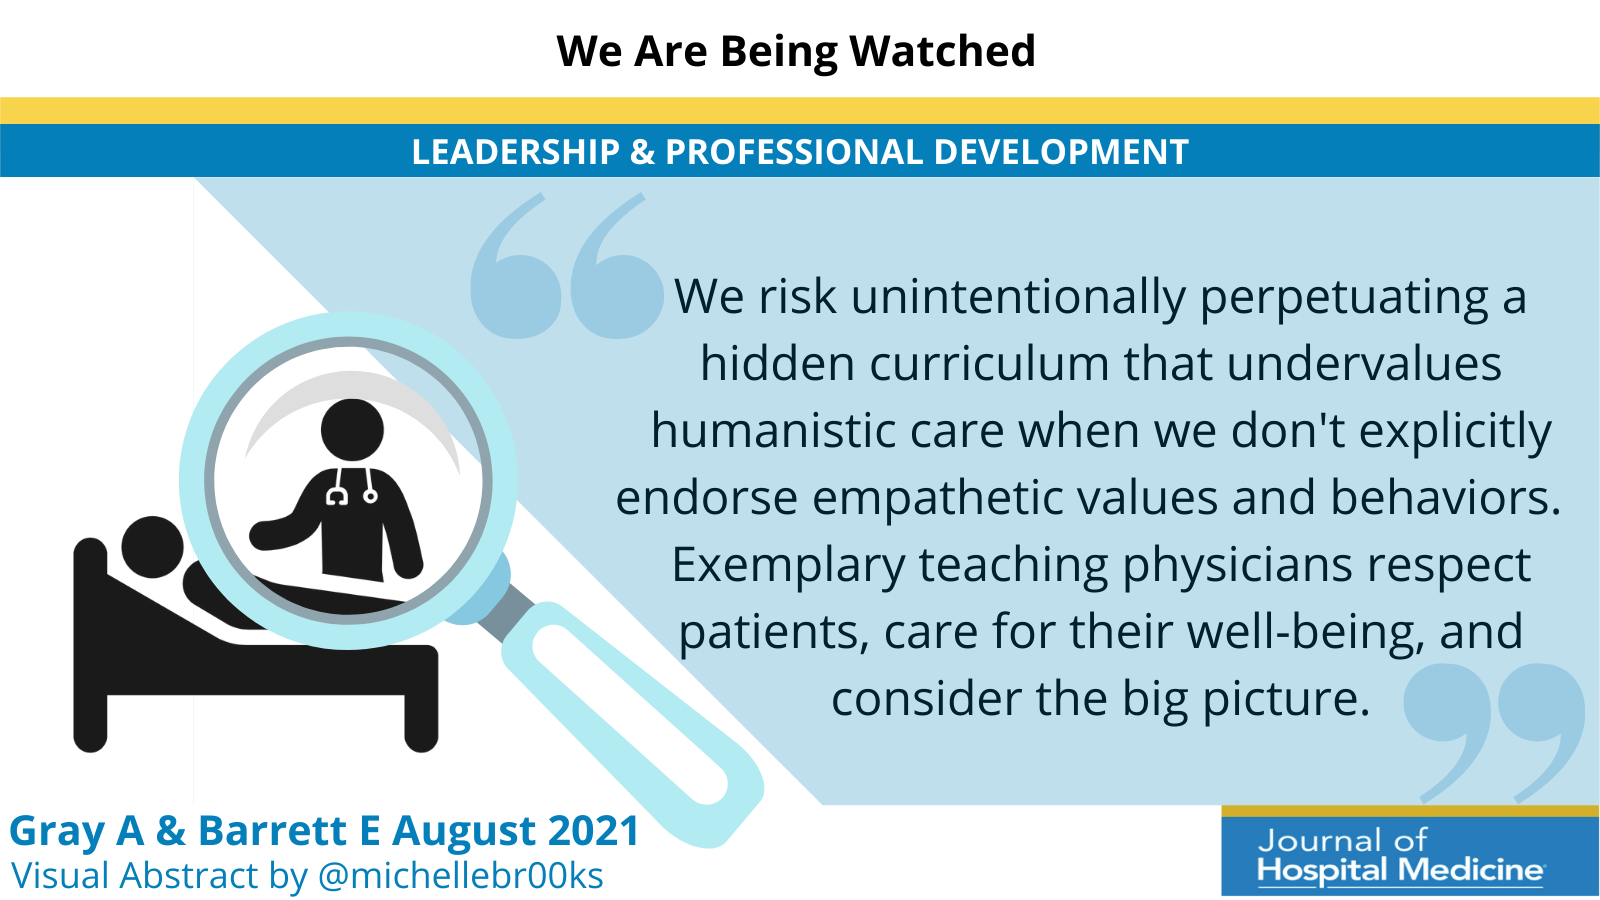 Leadership & Professional Development: We Are Being Watched